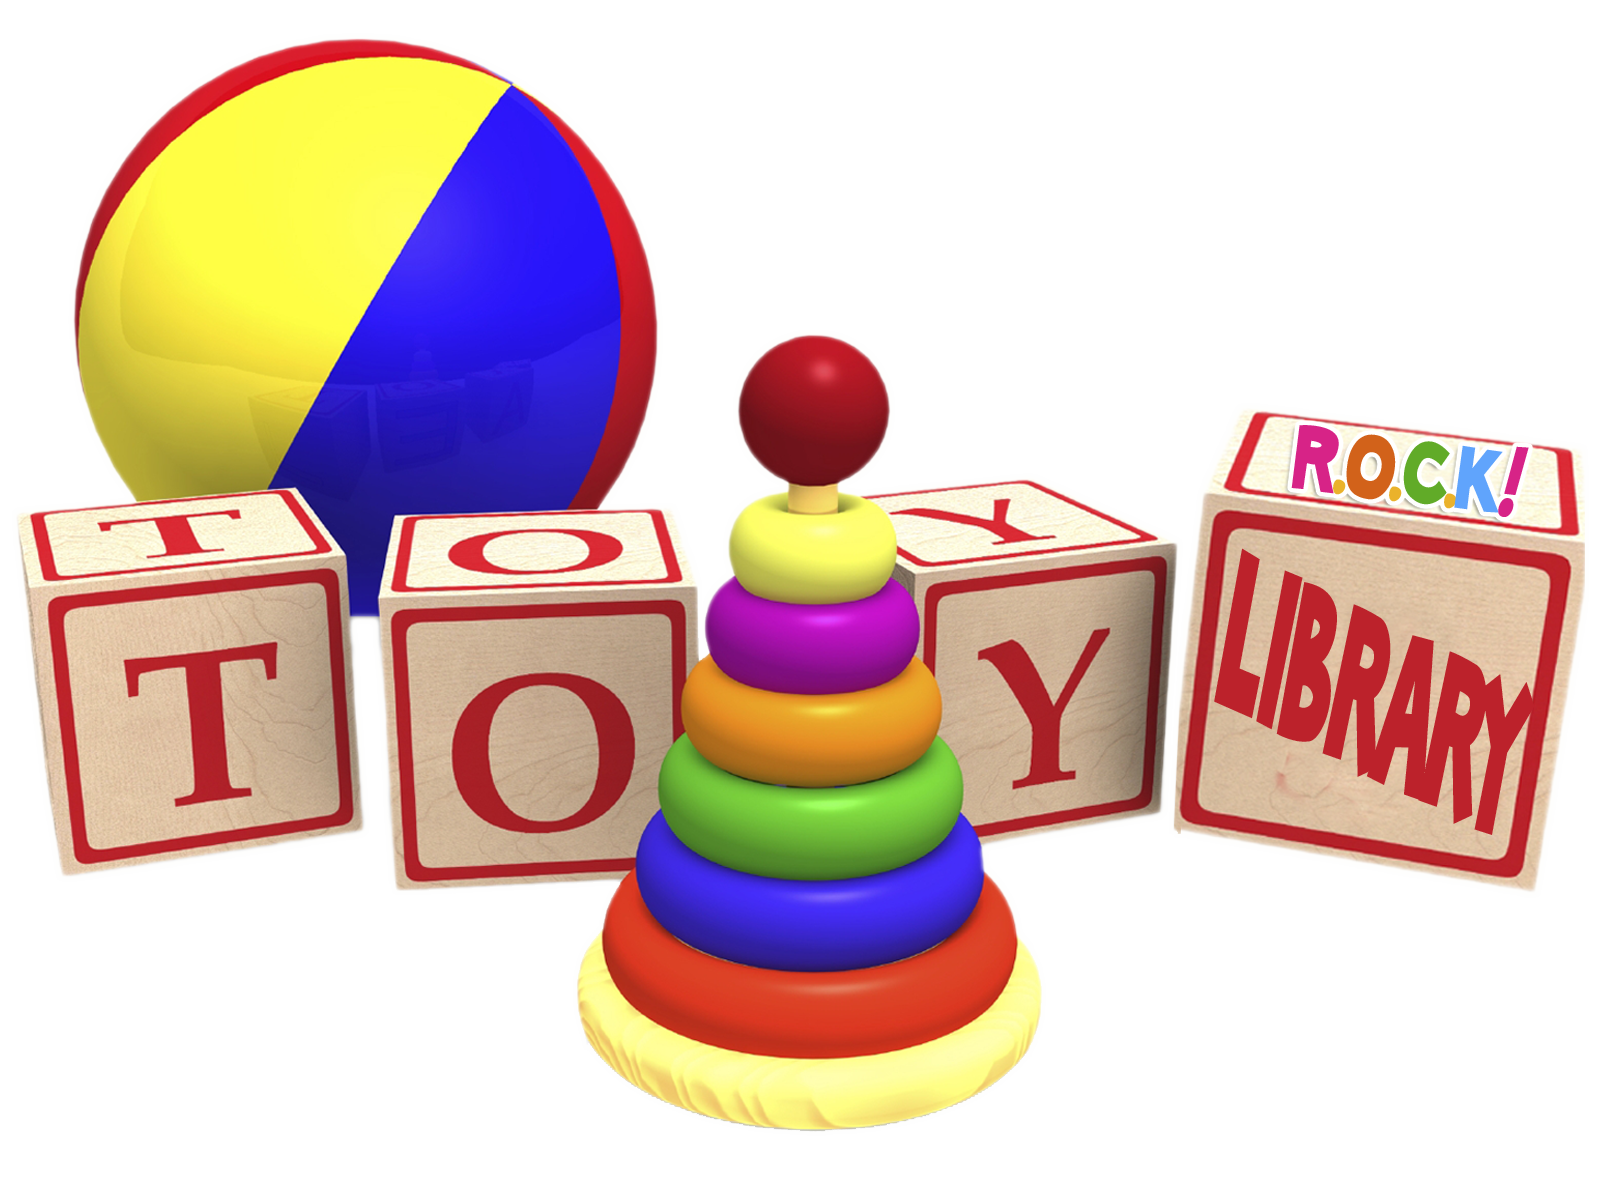 Playground clipart toy. Local libraries guide parramatta